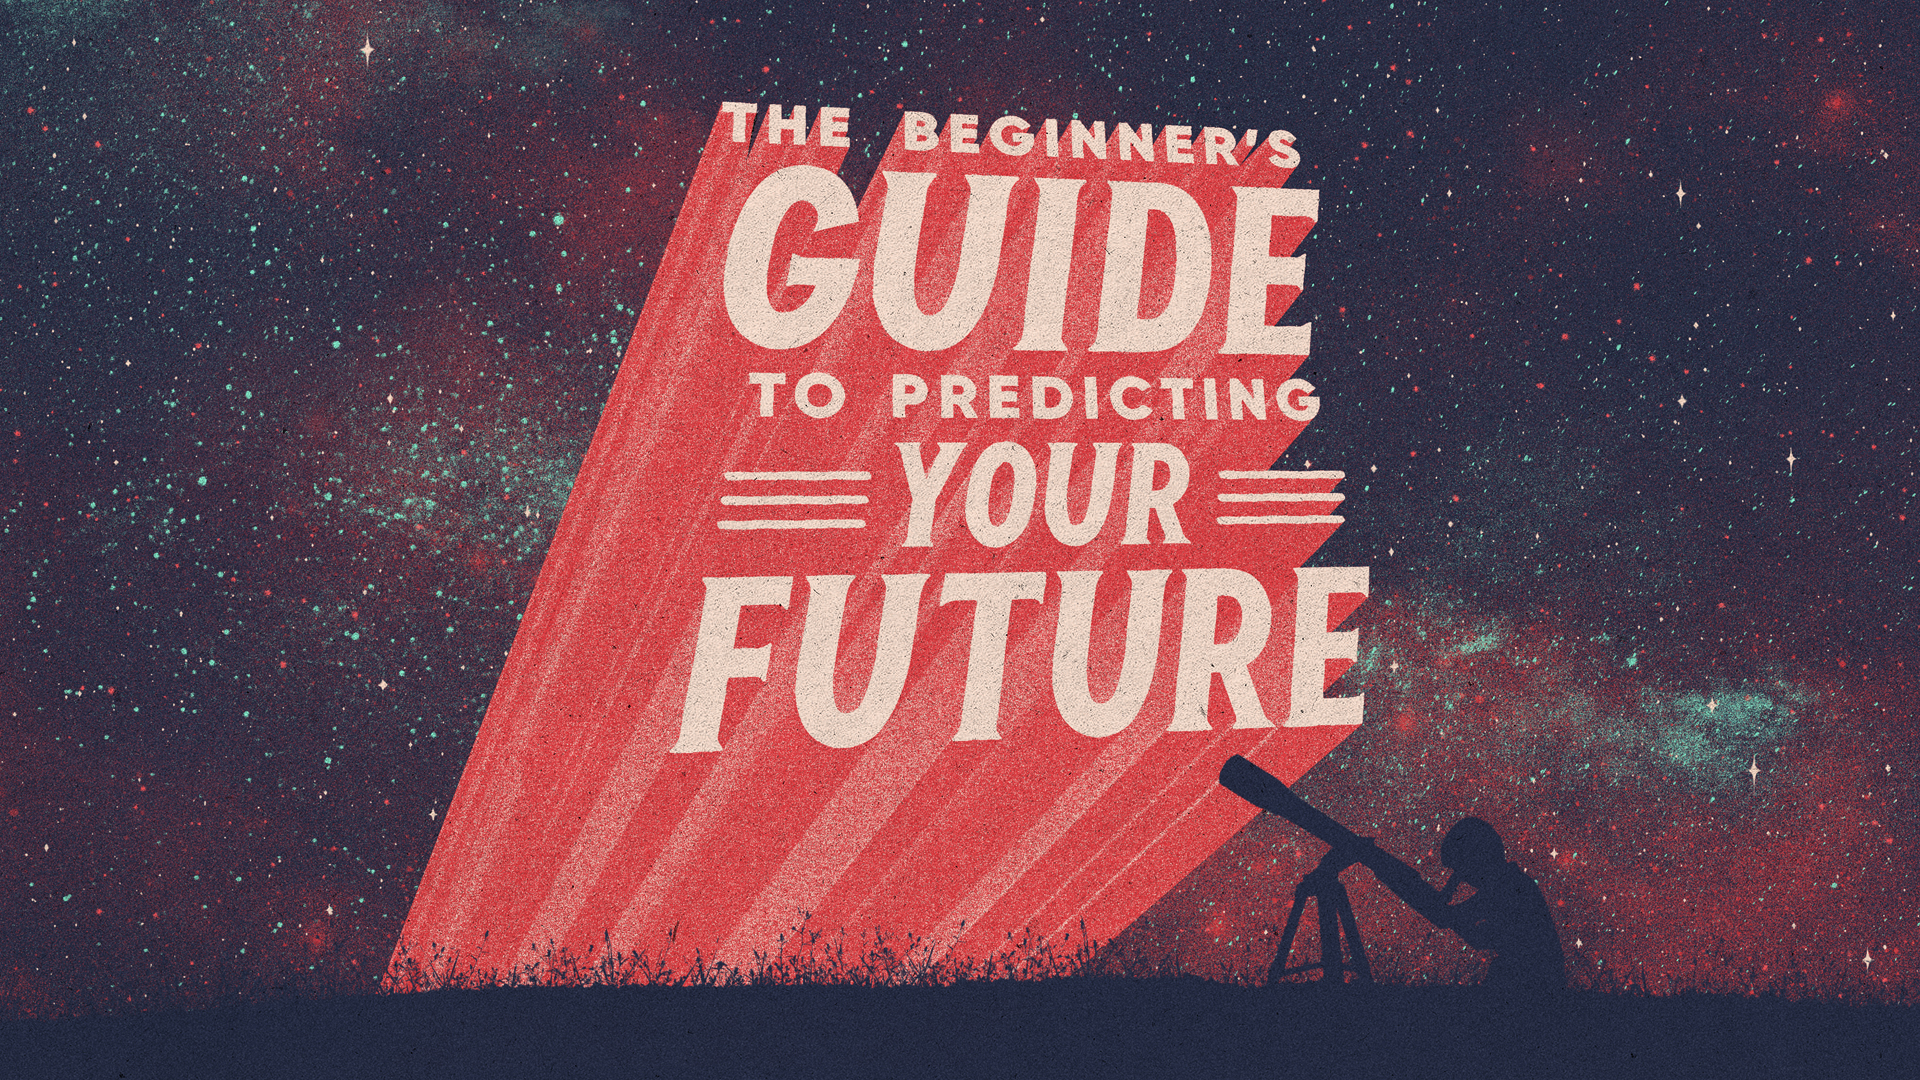 The-Beginners-Guide-to-Predicting-Your-Future_1920x1080.jpg